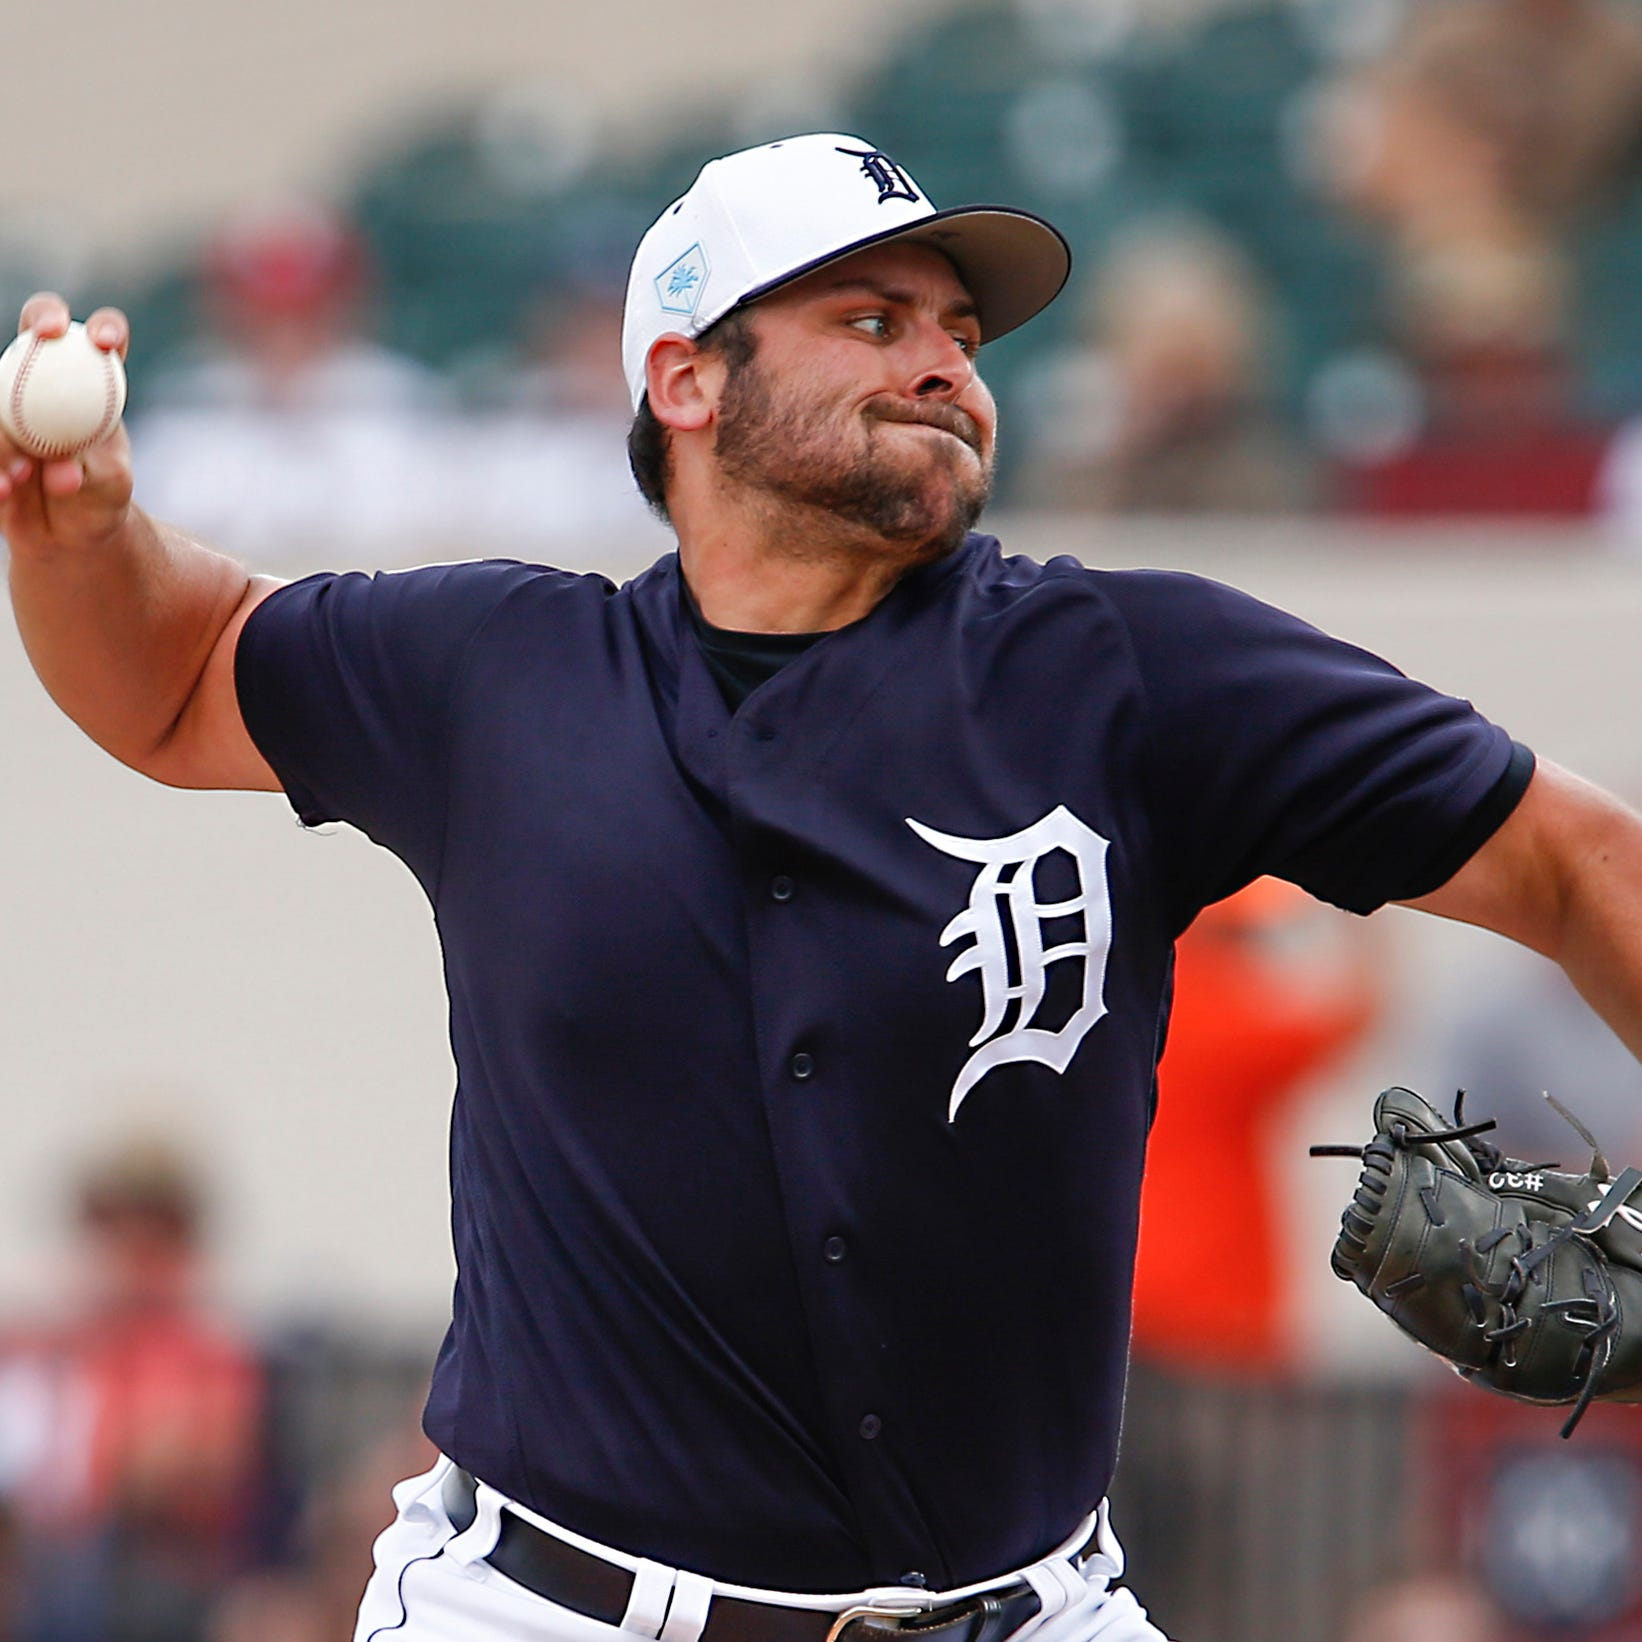 Detroit Tigers observations: Michael Fulmer's velocity still down